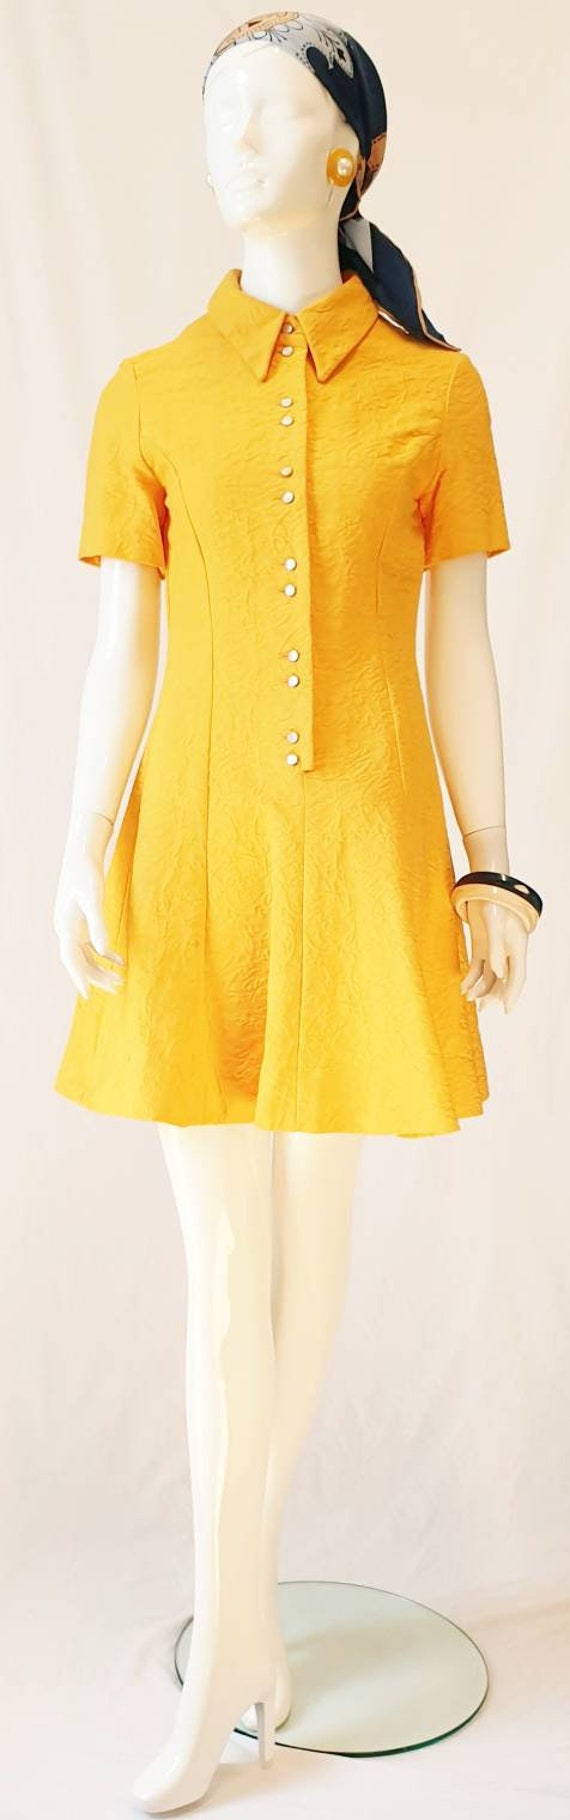 Vtg 60s Norma Tullo Couture Sunflower Yellow Cotto